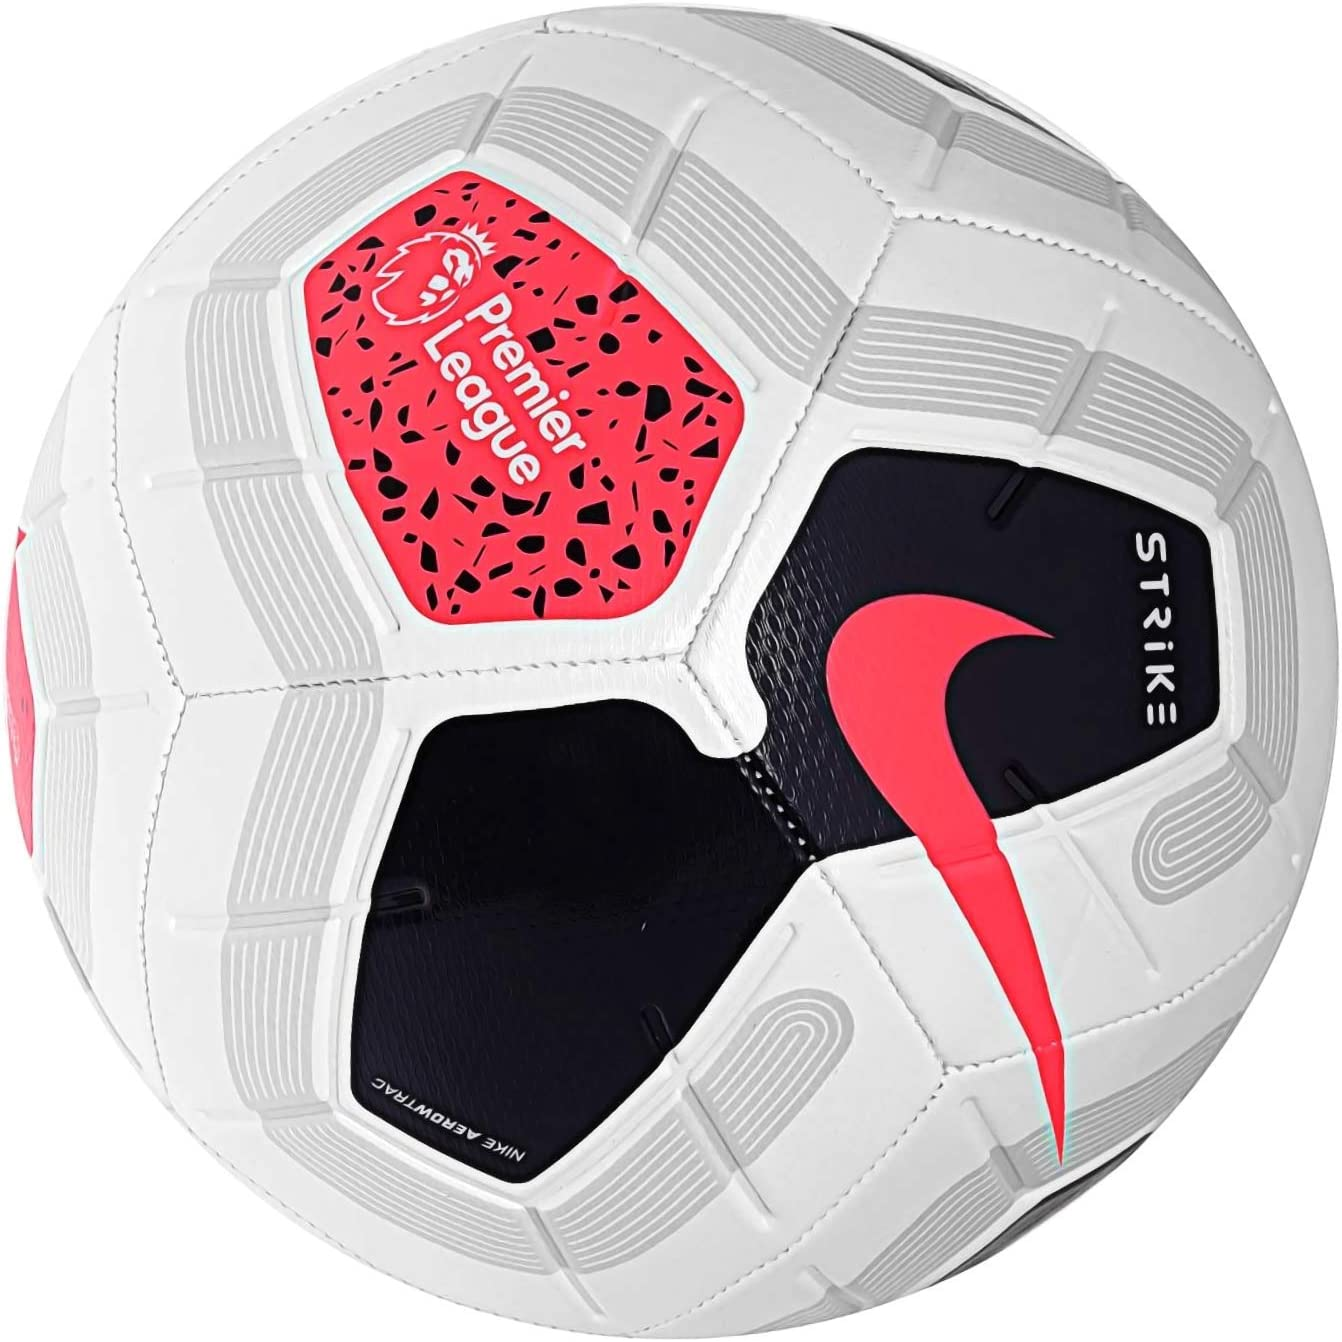 Newness Sicily Apply  Nike Strike Premier League Football 2019-2020 Size 3: Amazon.co.uk: Sports  & Outdoors